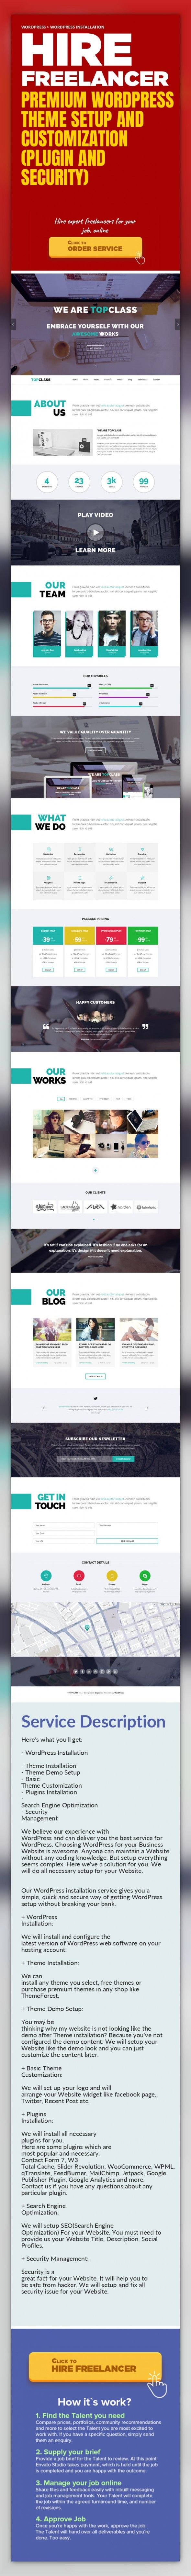 Premium WordPress Theme Setup and Customization (Plugin and Security) WordPress, WordPress Installation   Here's what you'll get:    - WordPress Installation   - Theme Installation   - Theme Demo Setup   - Basic Theme Customization   - Plugins Installation   - Search Engine Optimization   - Security Management    We believe our experience with WordPress and can deliver you the best service for Wor...